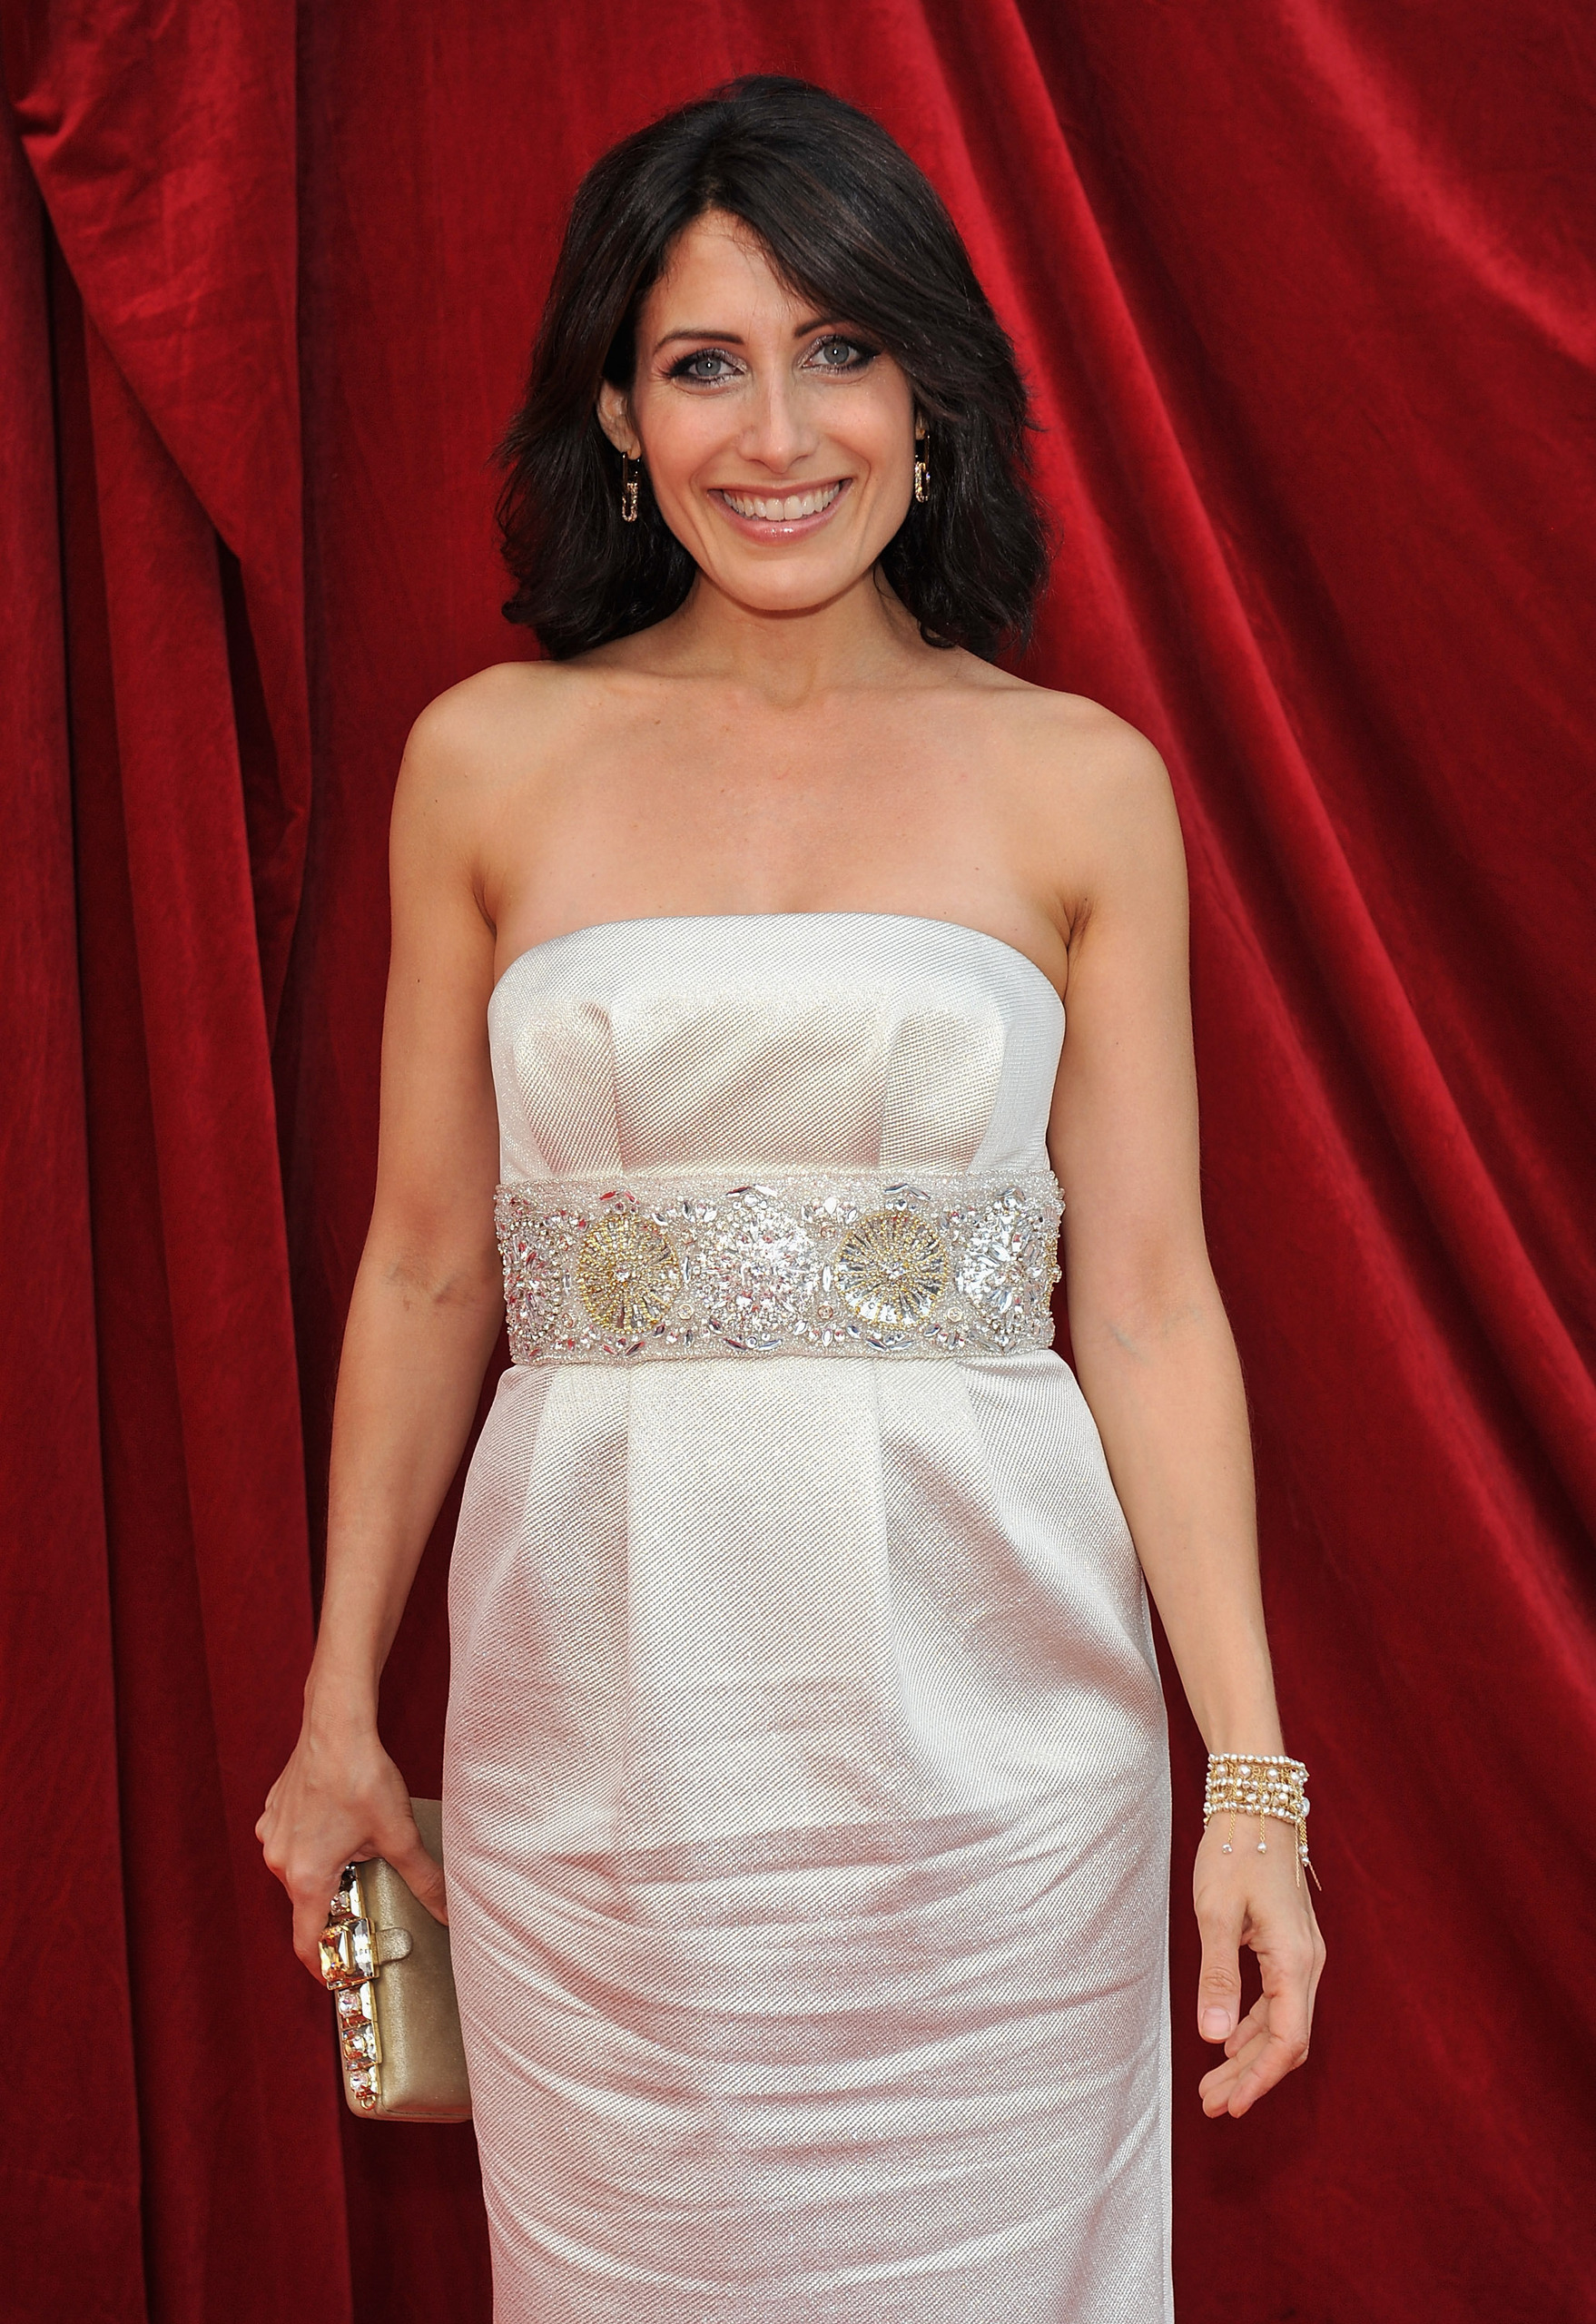 Necessary words... lisa edelstein real nude photos opinion